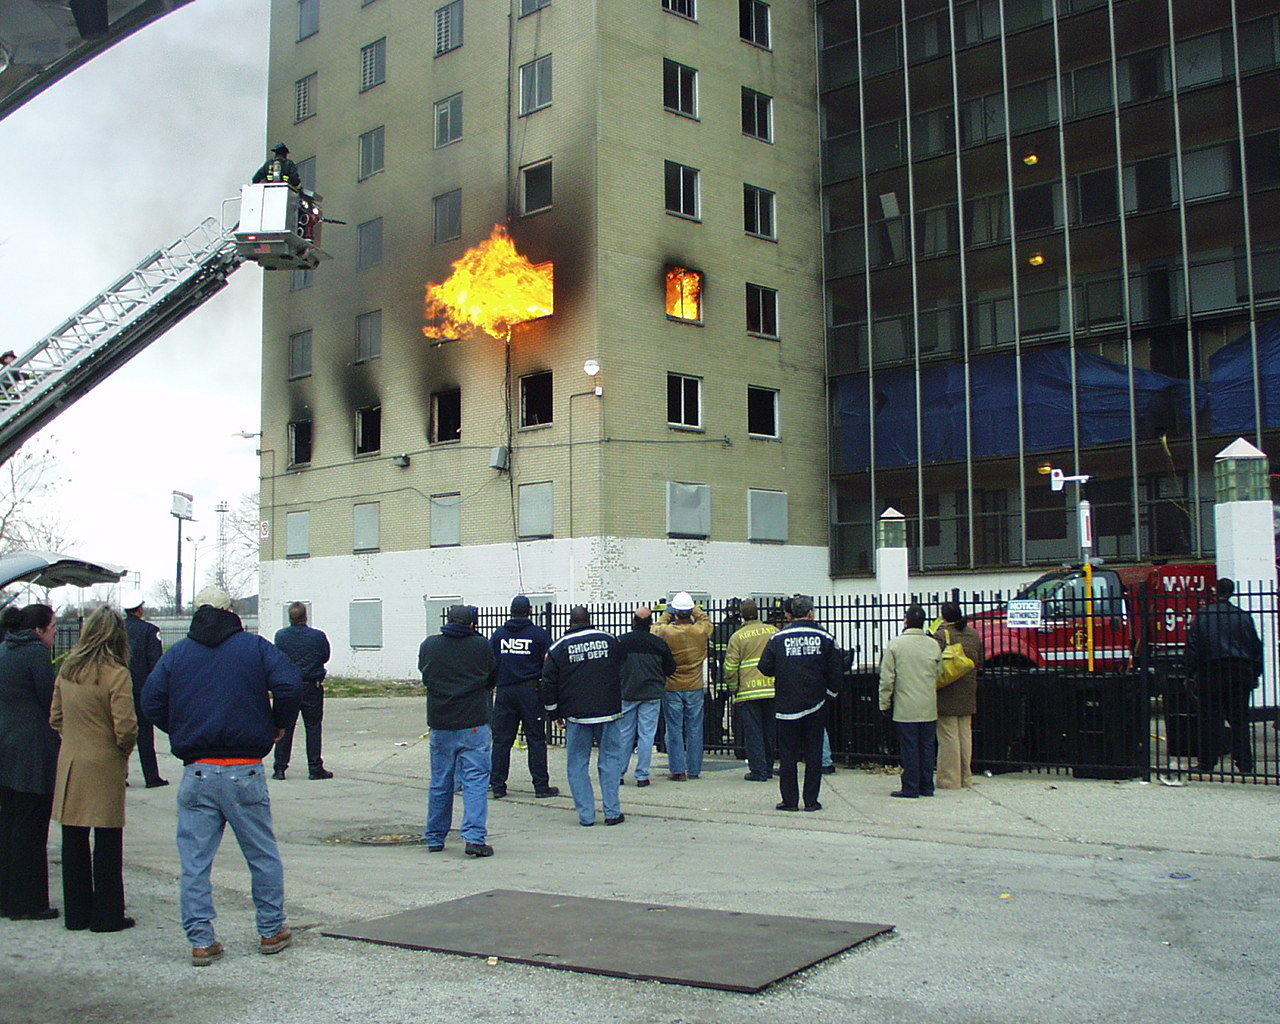 Nist Test Fans The Flames For High Rise Fire Safety Nist